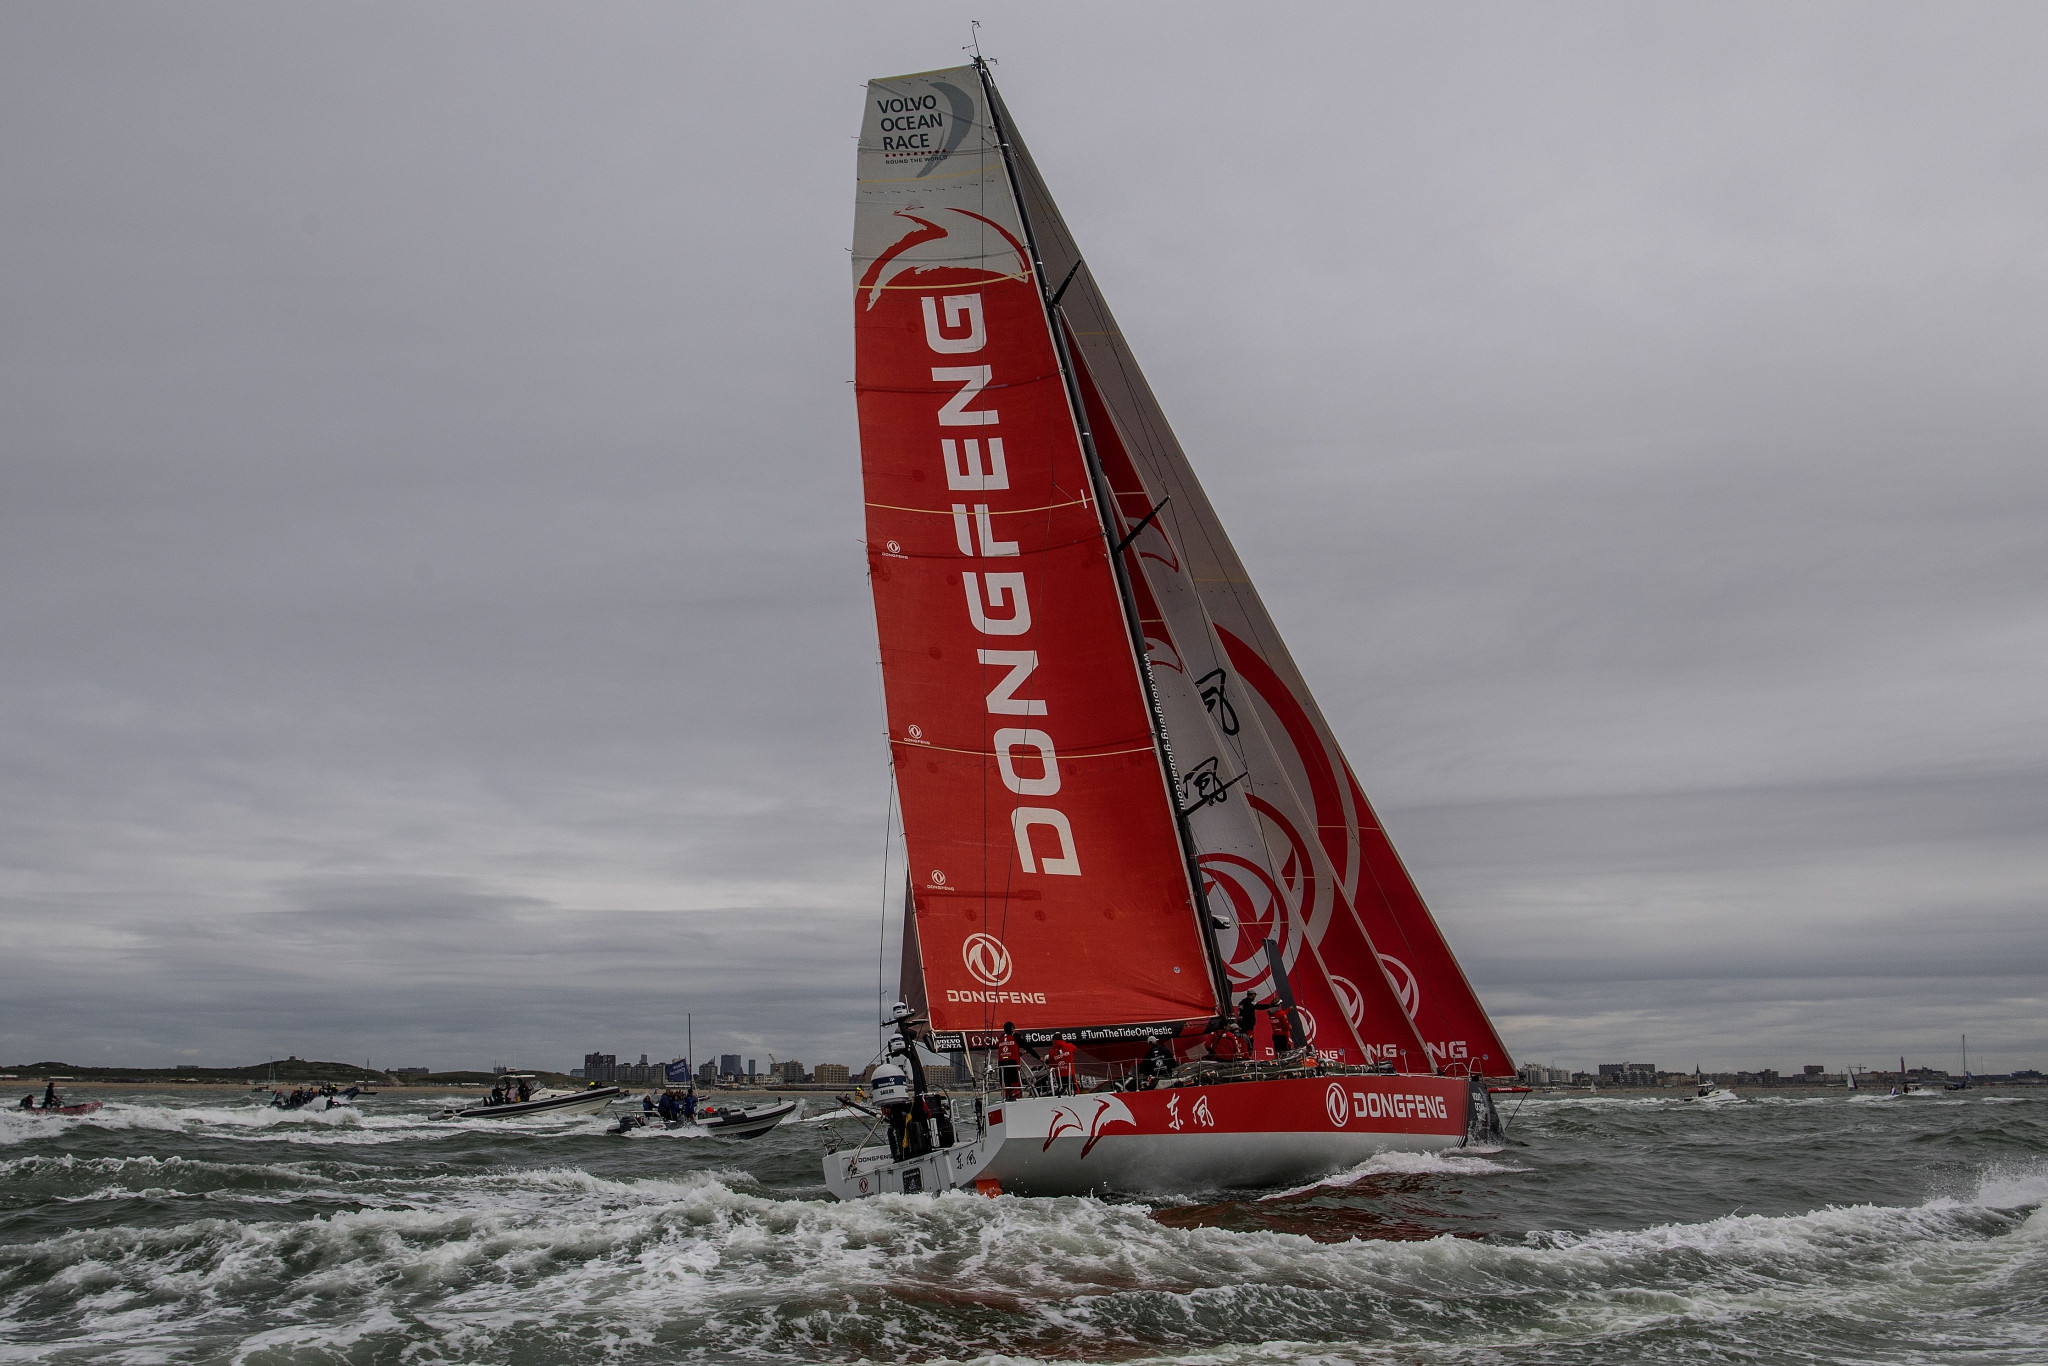 Keelboat races such as the Volvo Ocean Race are very popular, but it is claimed the format would not work in an Olympic regatta ©Getty Images